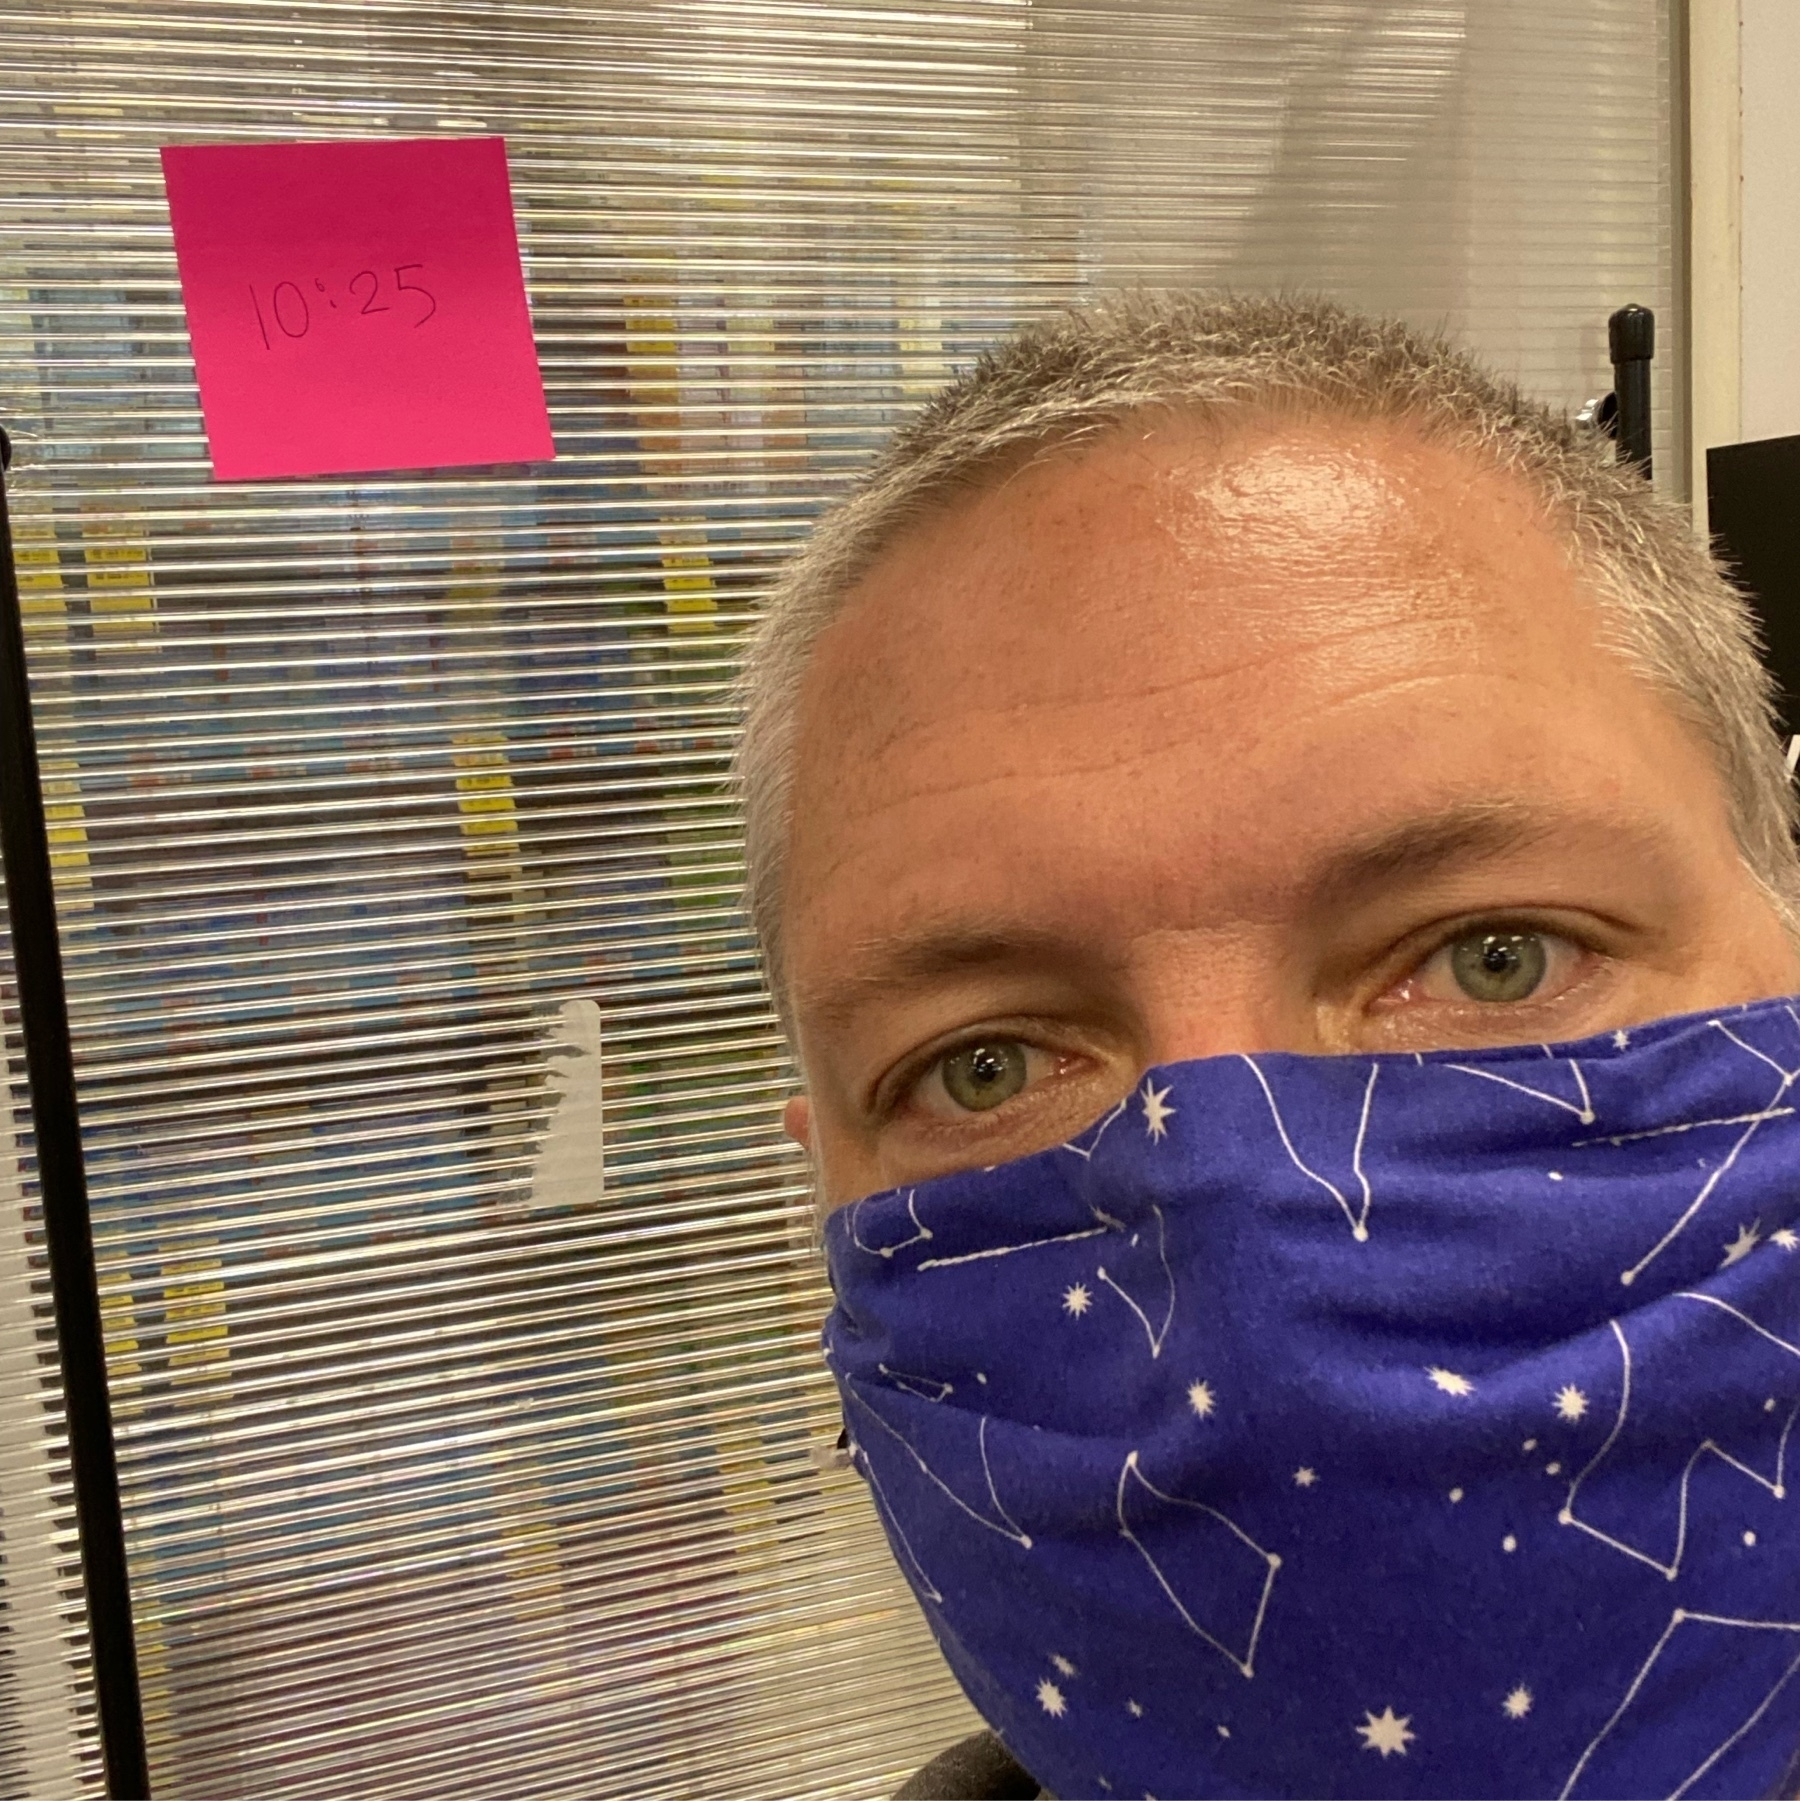 """Self portrait wearing a constellation mask, beside a post-it note """"10:25"""" in a pharmacy waiting area."""